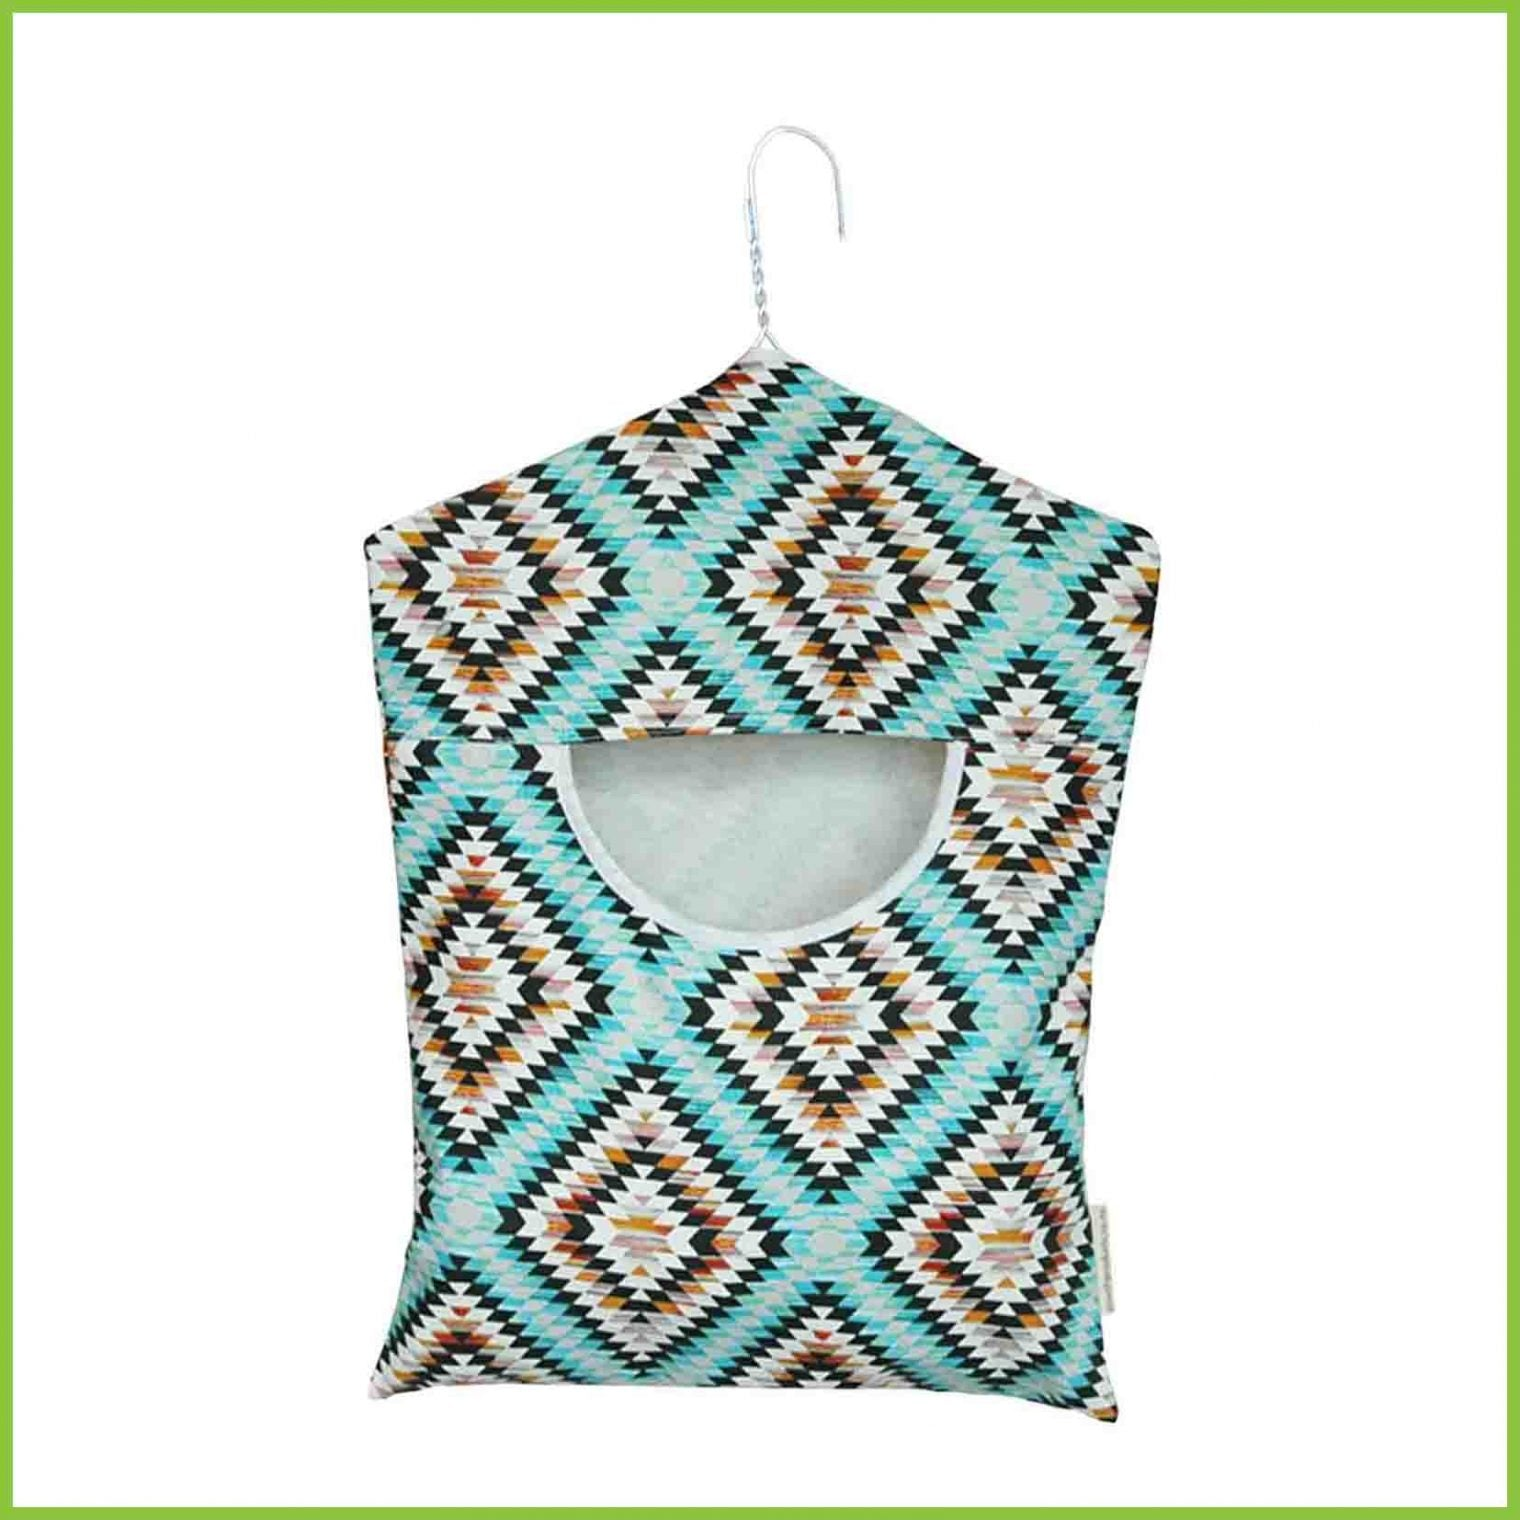 A cotton peg bag with an abstract aztec design in blue and grey.